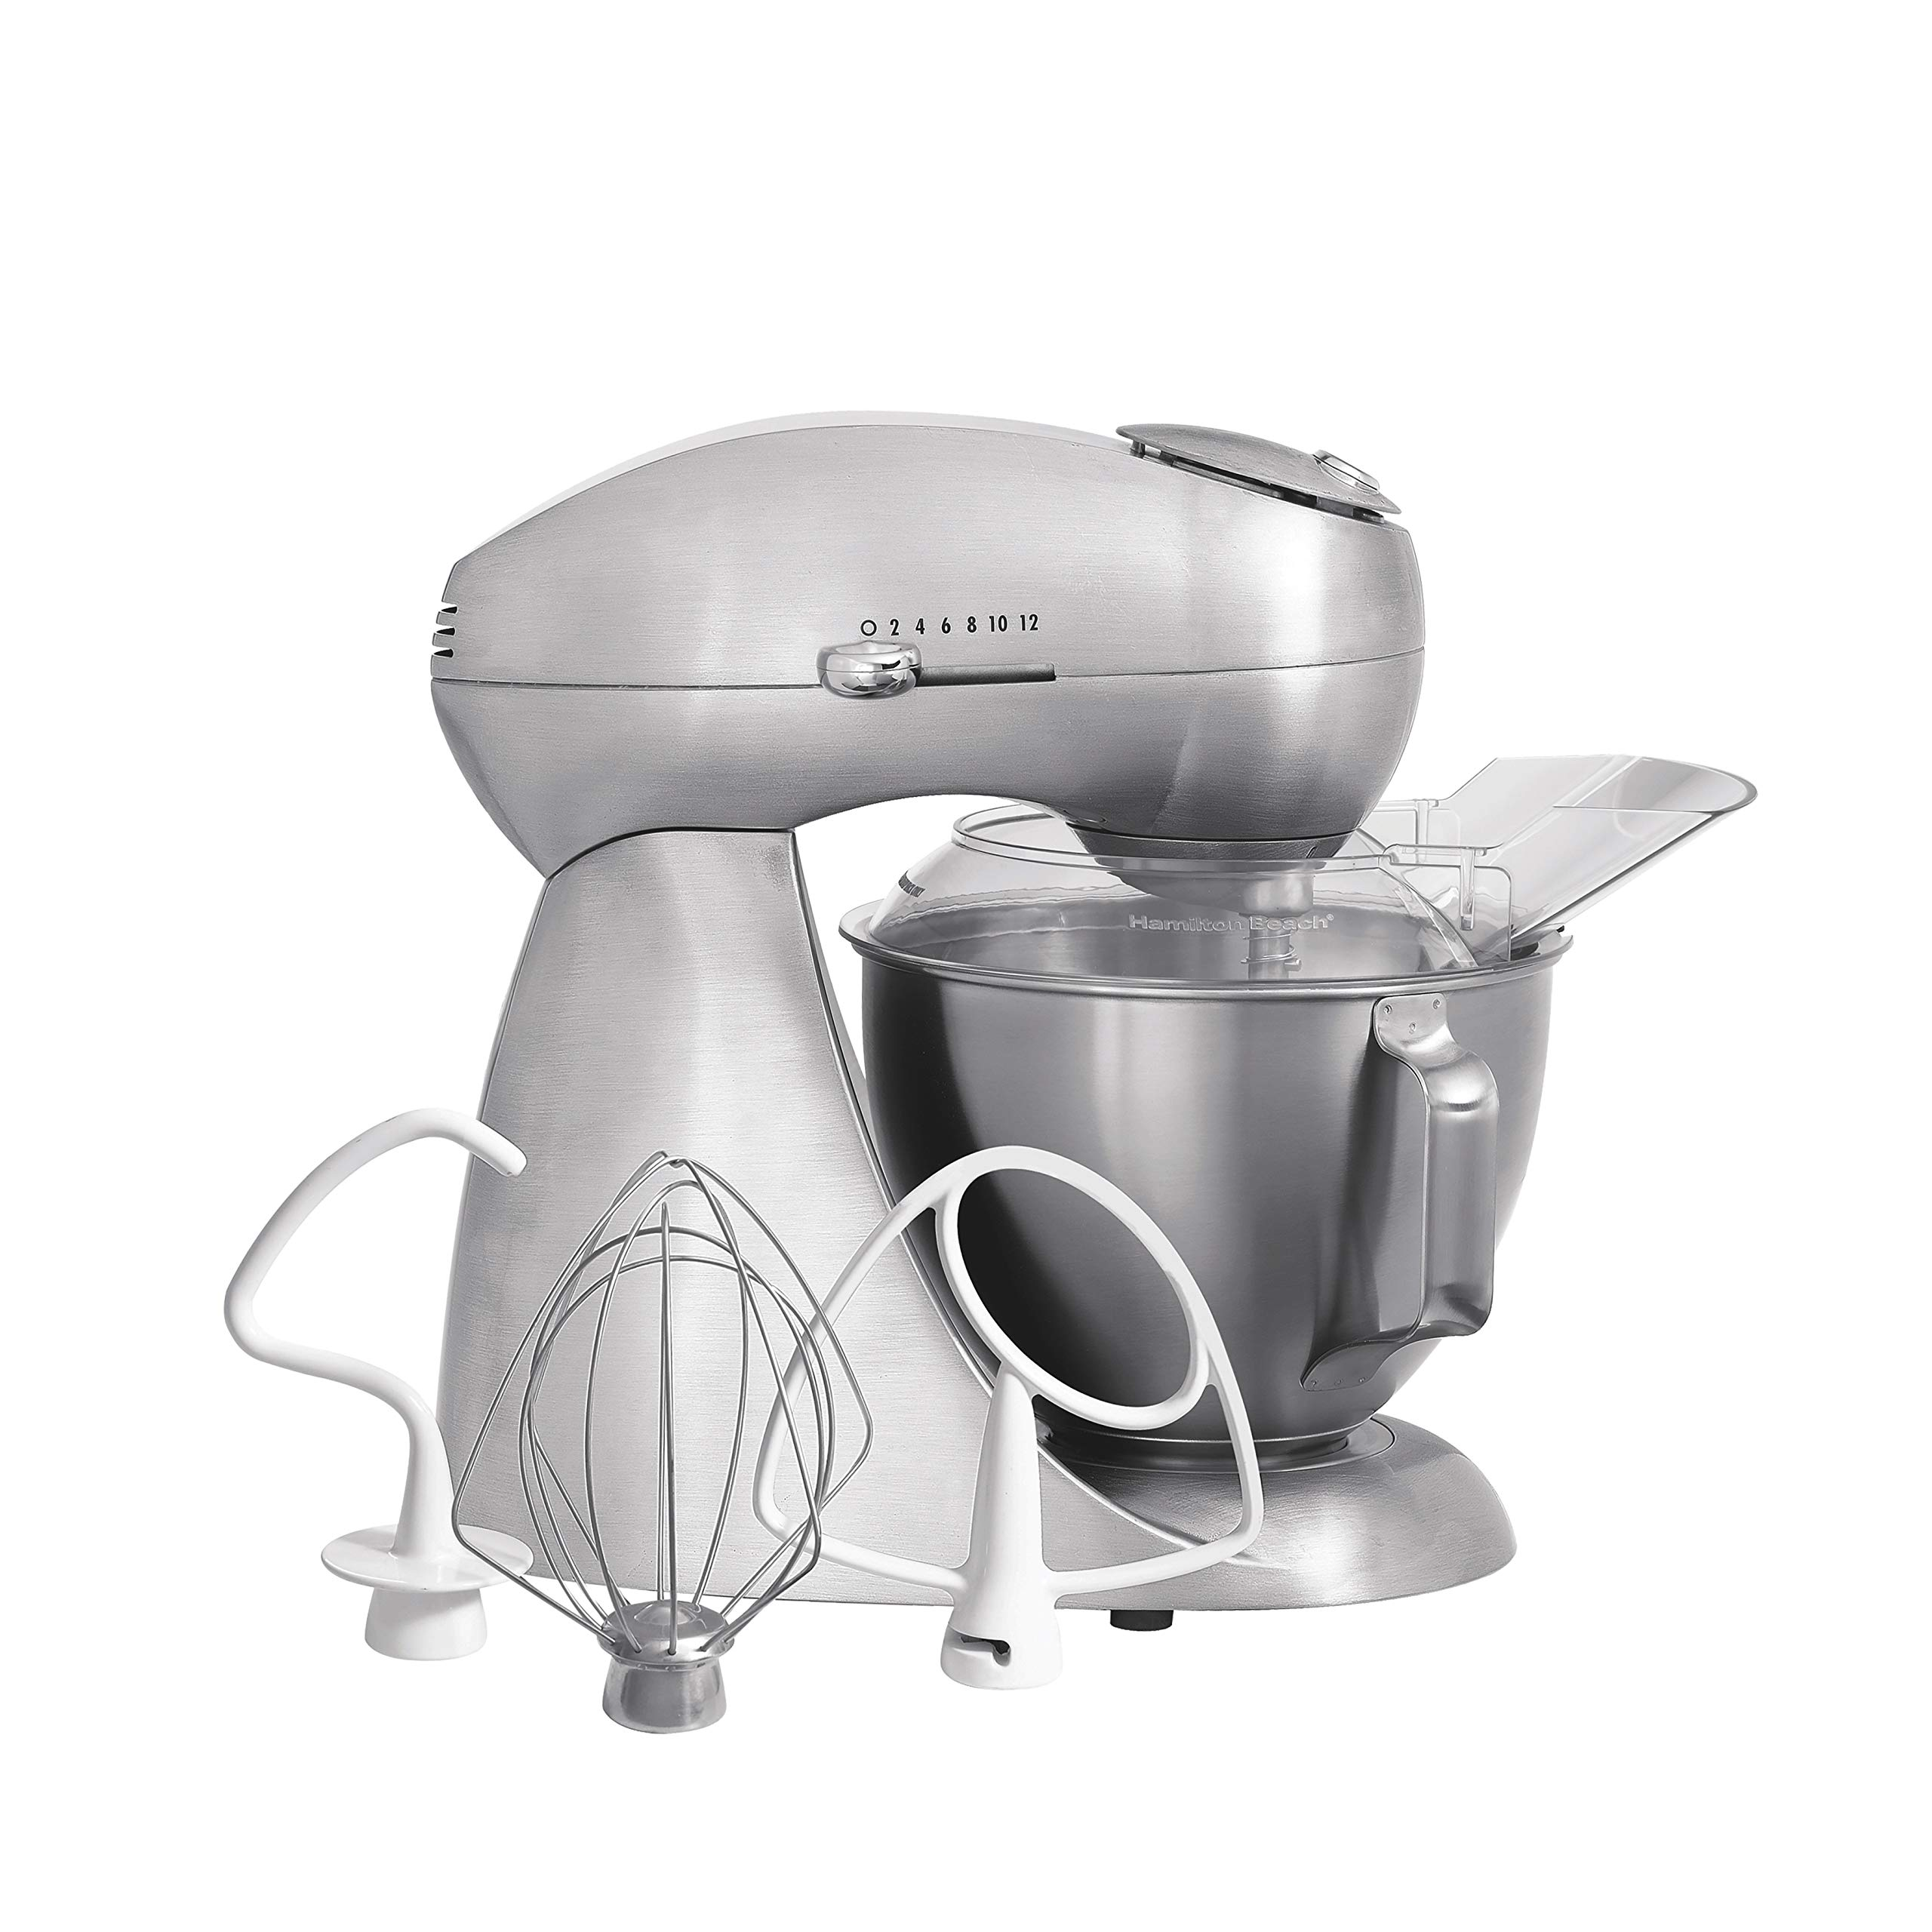 Hamilton Beach Eclectrics All-Metal 12-Speed Electric Stand Mixer, Tilt-Head, 4.5 Quarts, Pouring Shield, Sterling (63220) by Hamilton Beach